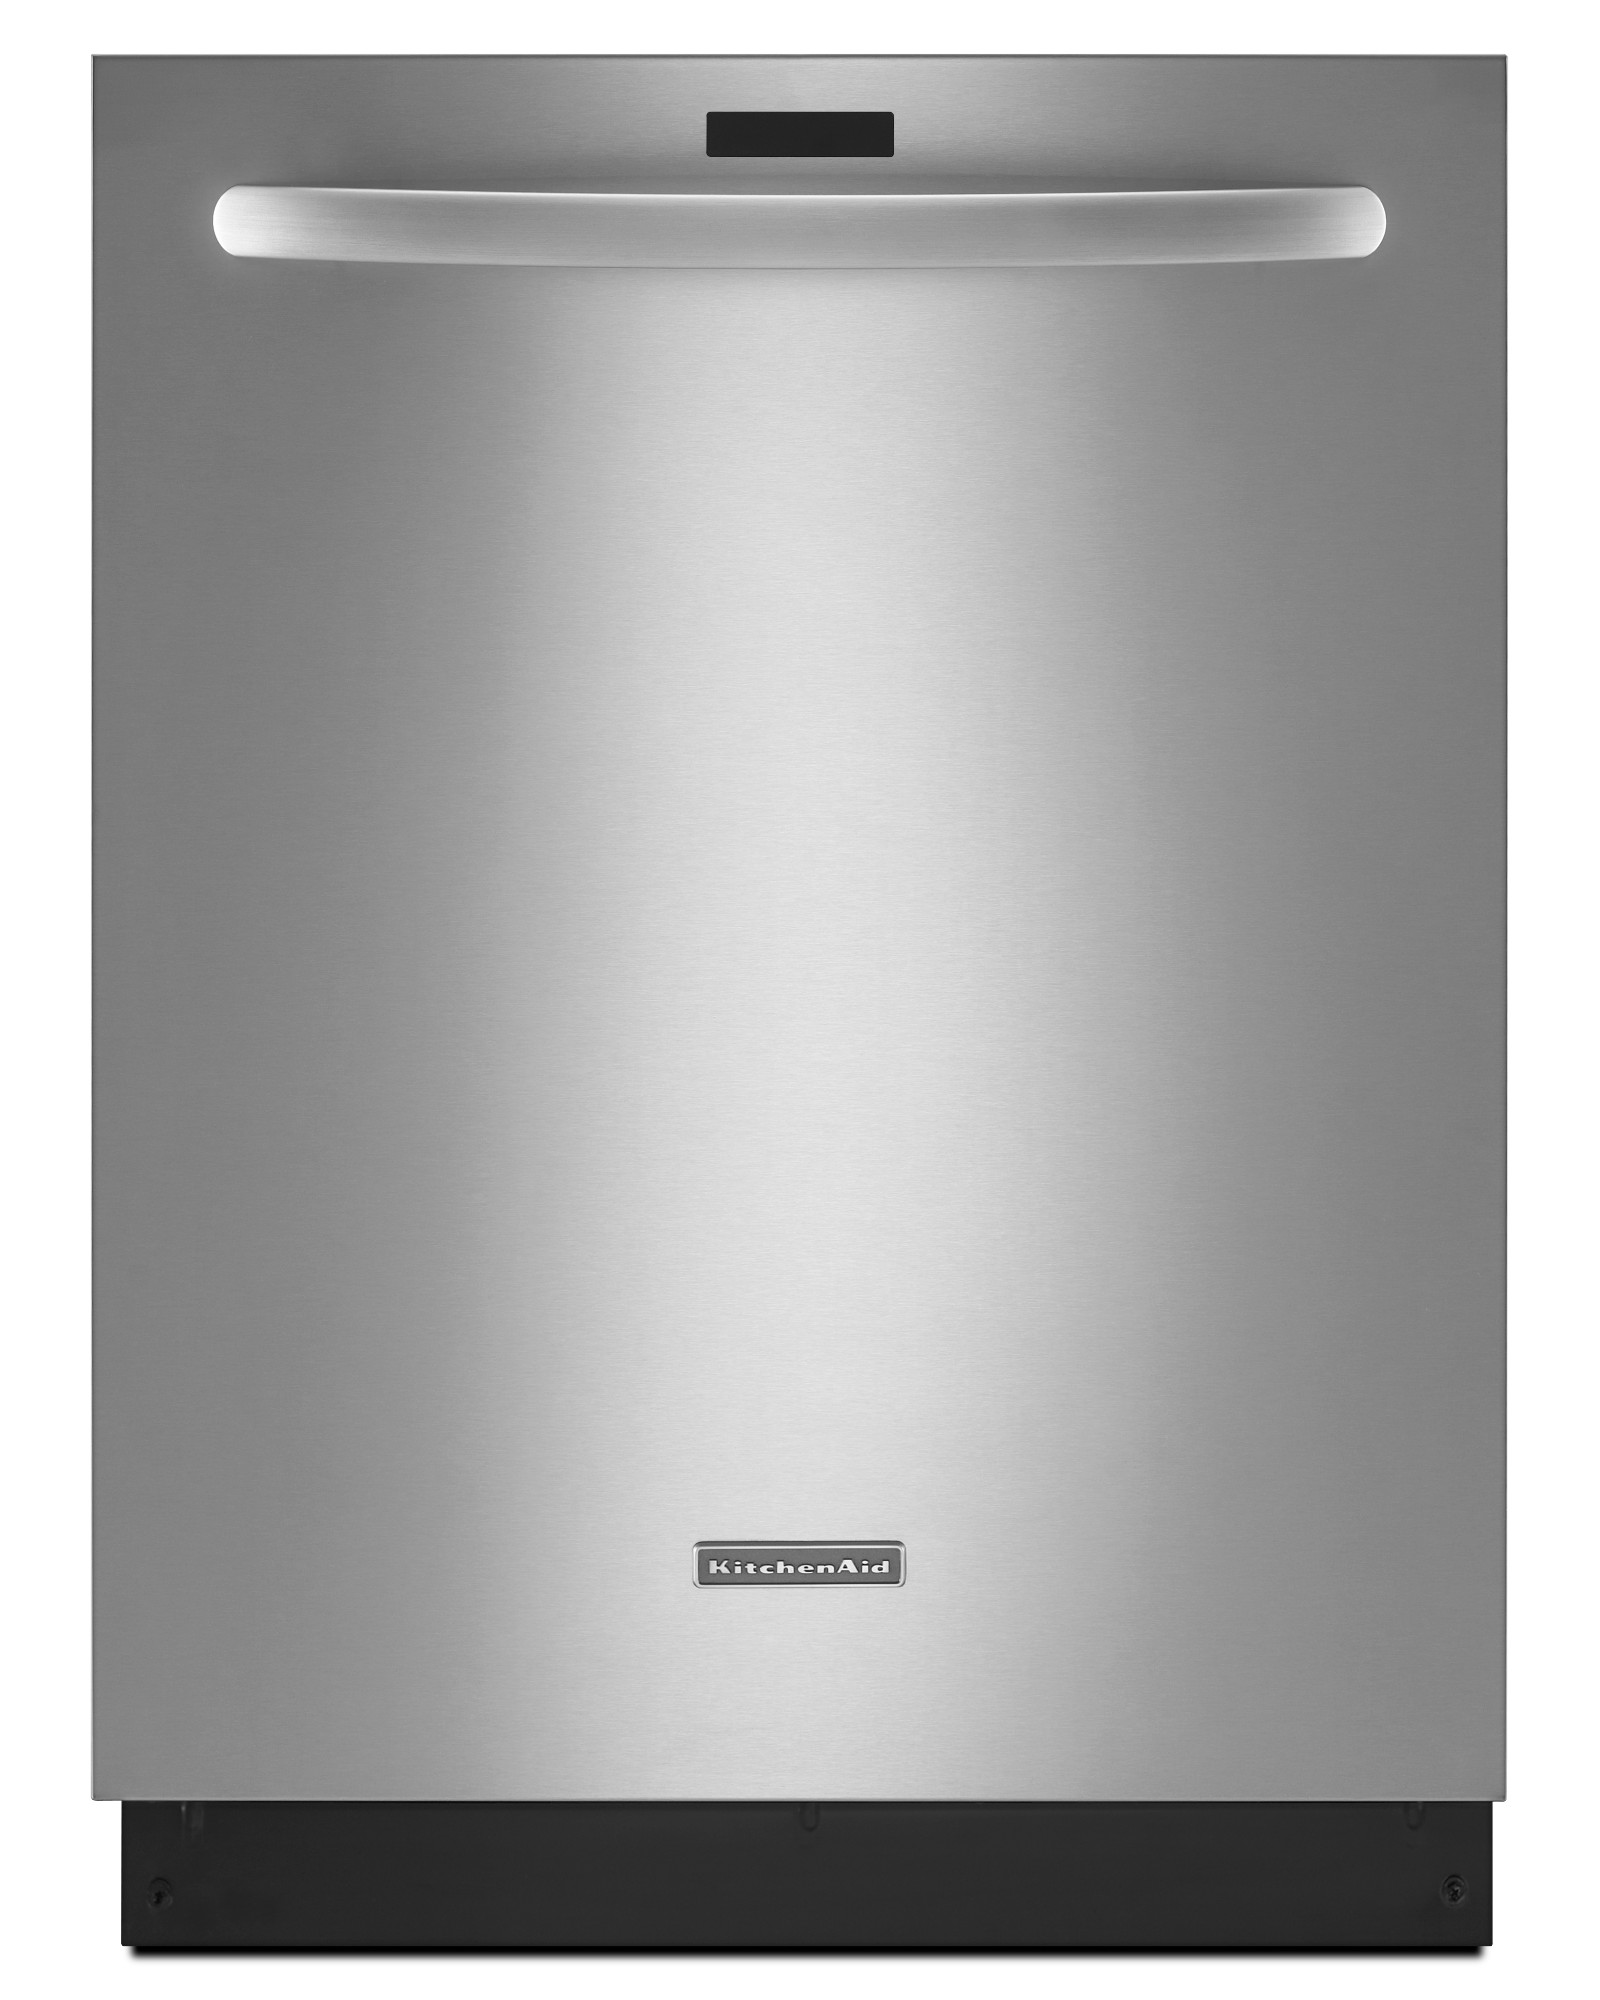 KDTM354DSS-24-Built-In-6-Cycle-Dishwasher-w-Ultra-Fine-Filter-Stainless-Steel